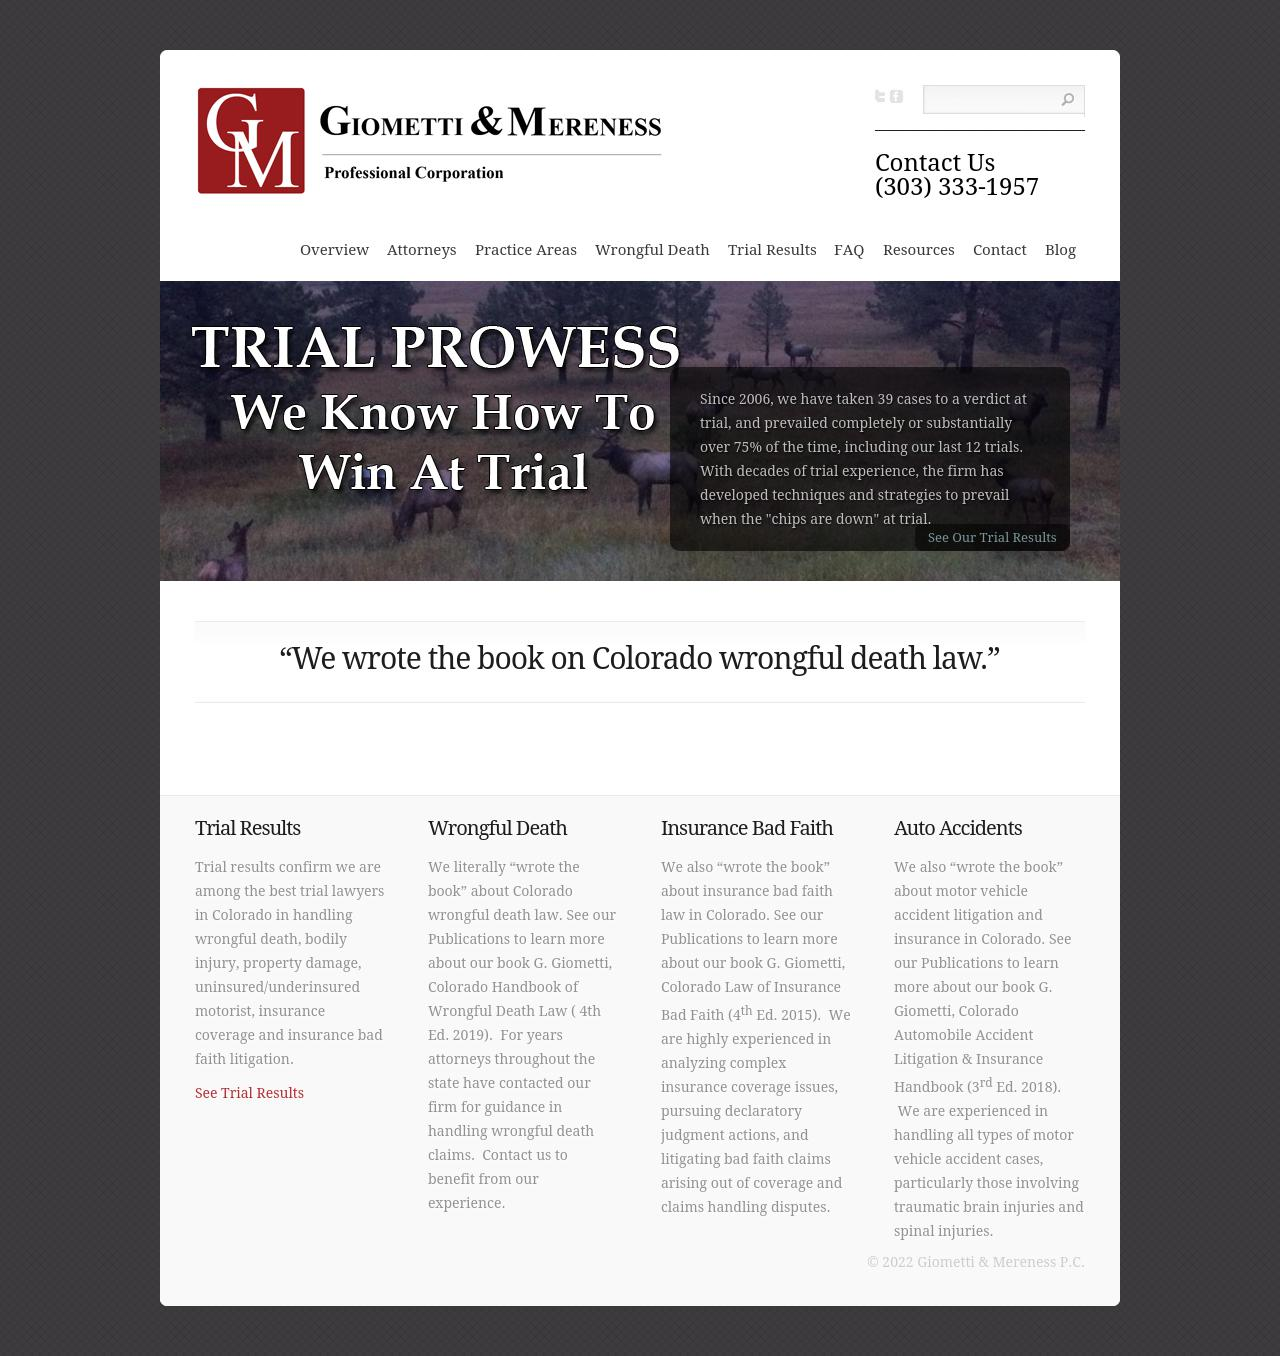 Gregory R Giometti & Associates P C - Denver CO Lawyers